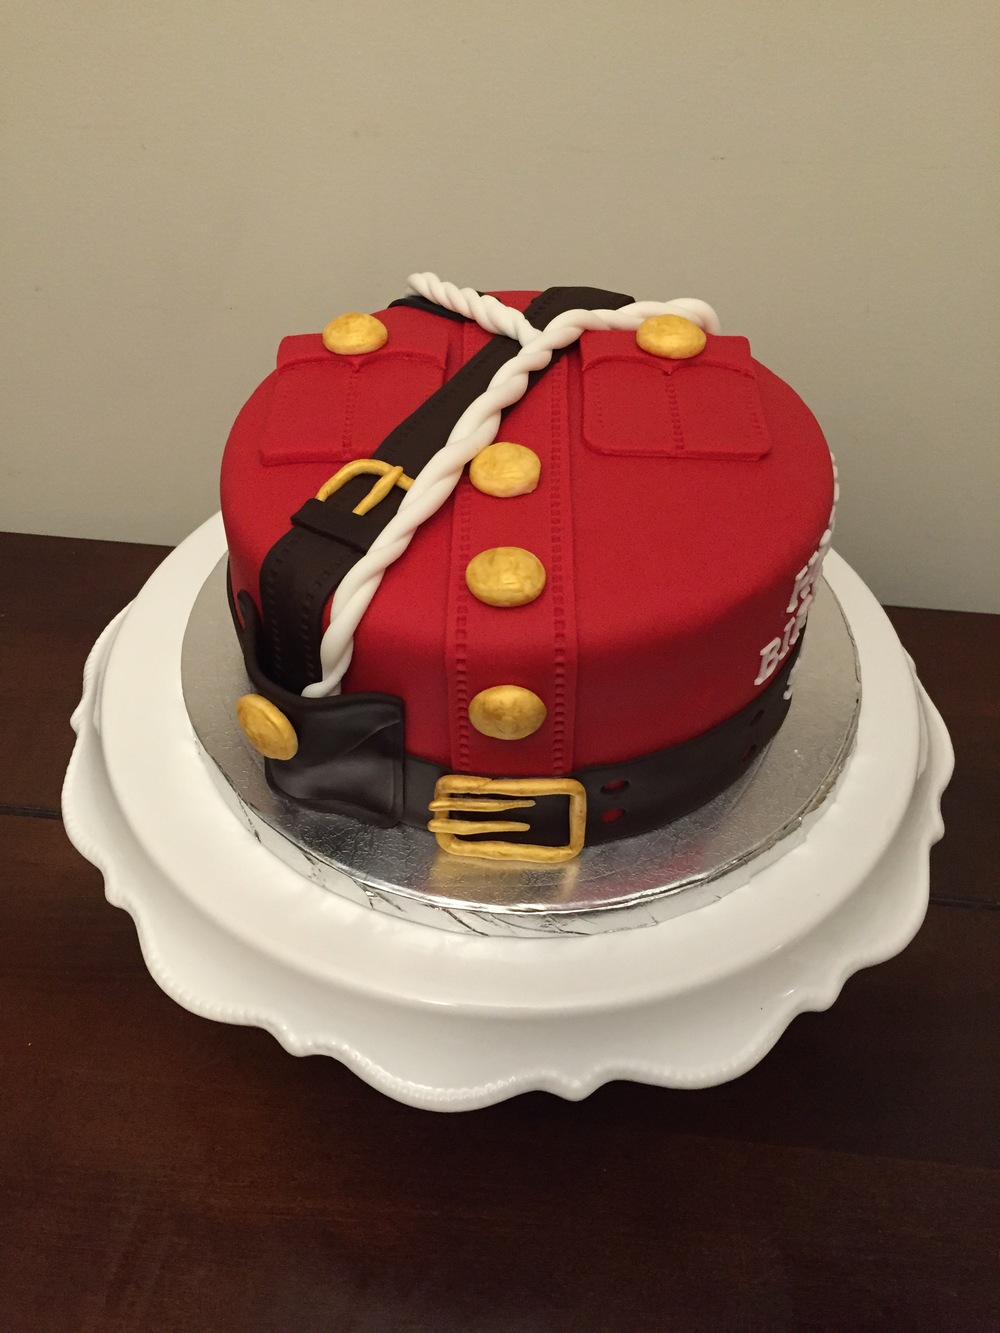 RCMP Red Serge Cake